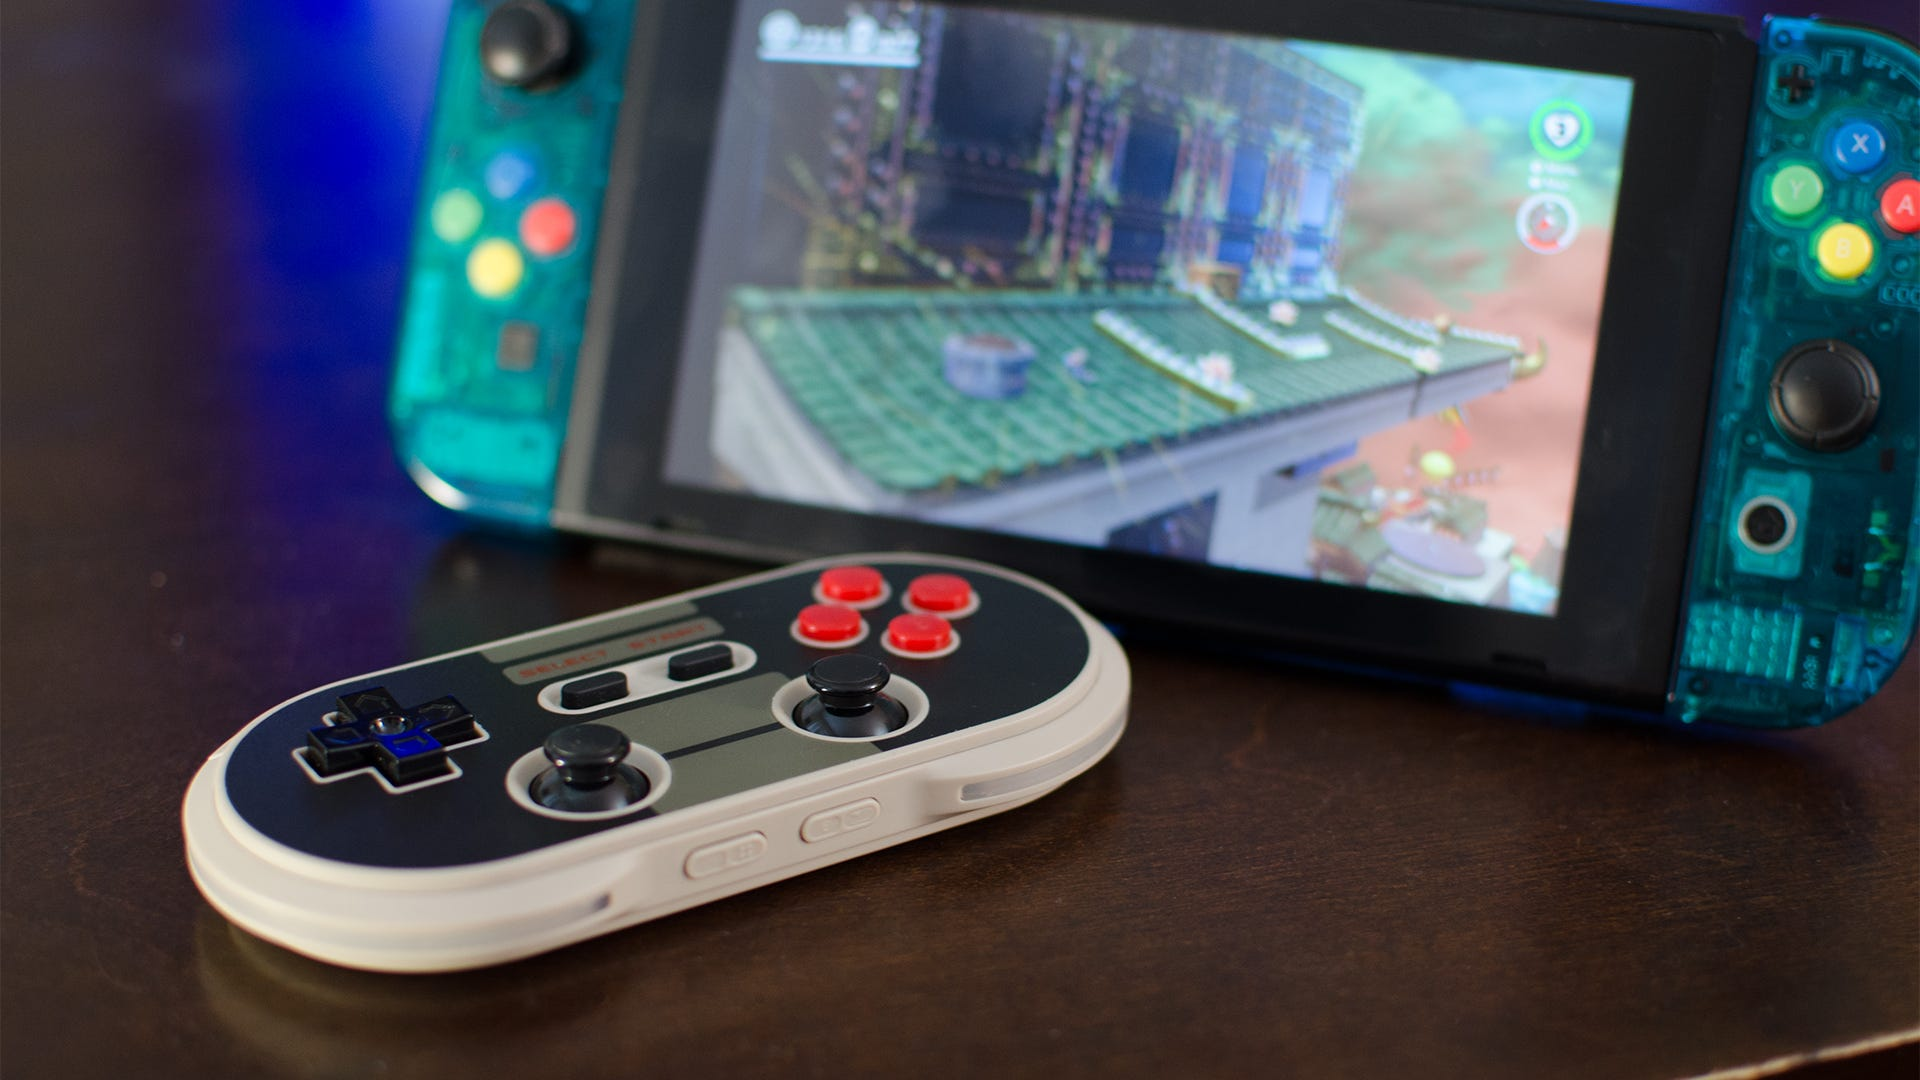 N30 pro controller review a dose of nostalgia for your switch the nintendo switch pro controller is a pricey way to get a more comfortable alternative to the standard joy con the n30 pro is a third party solution that publicscrutiny Image collections